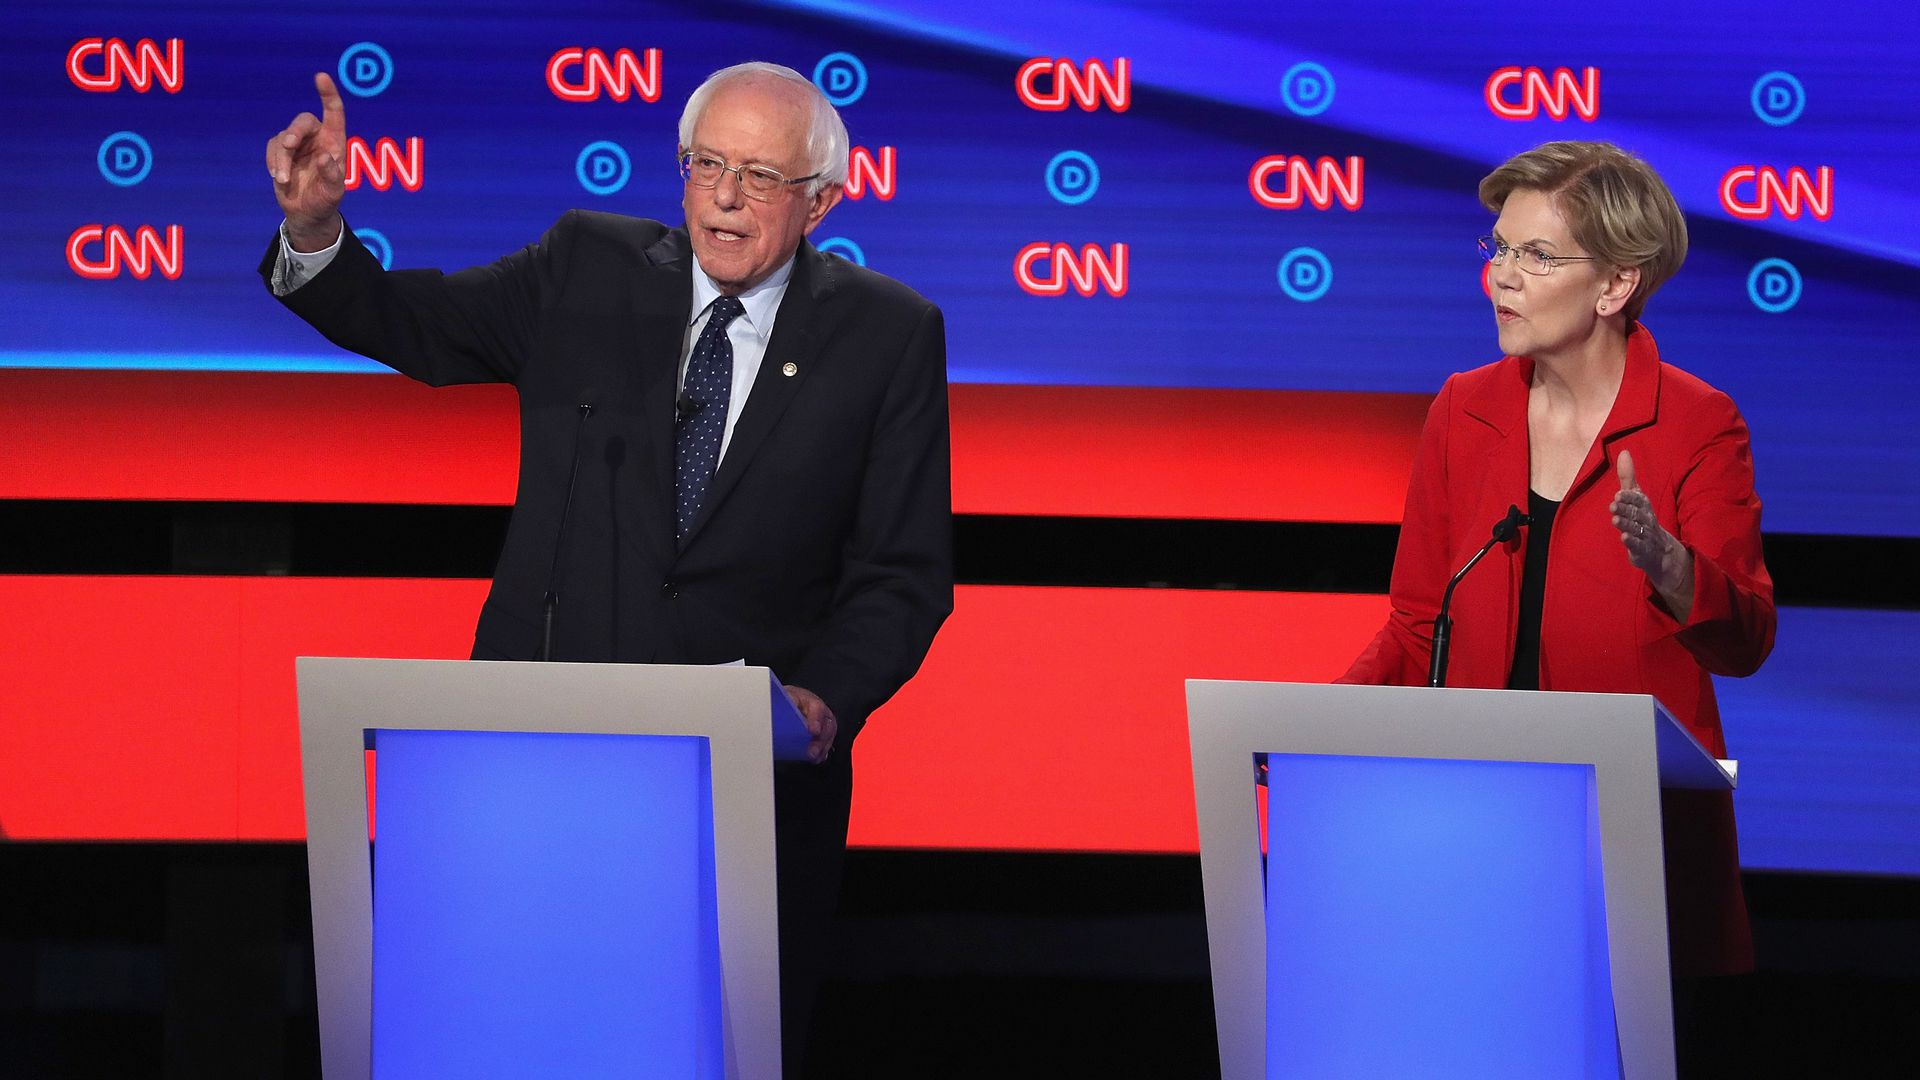 In this image, Warren and Sanders stand next to each other at two podiums on the debate stage.